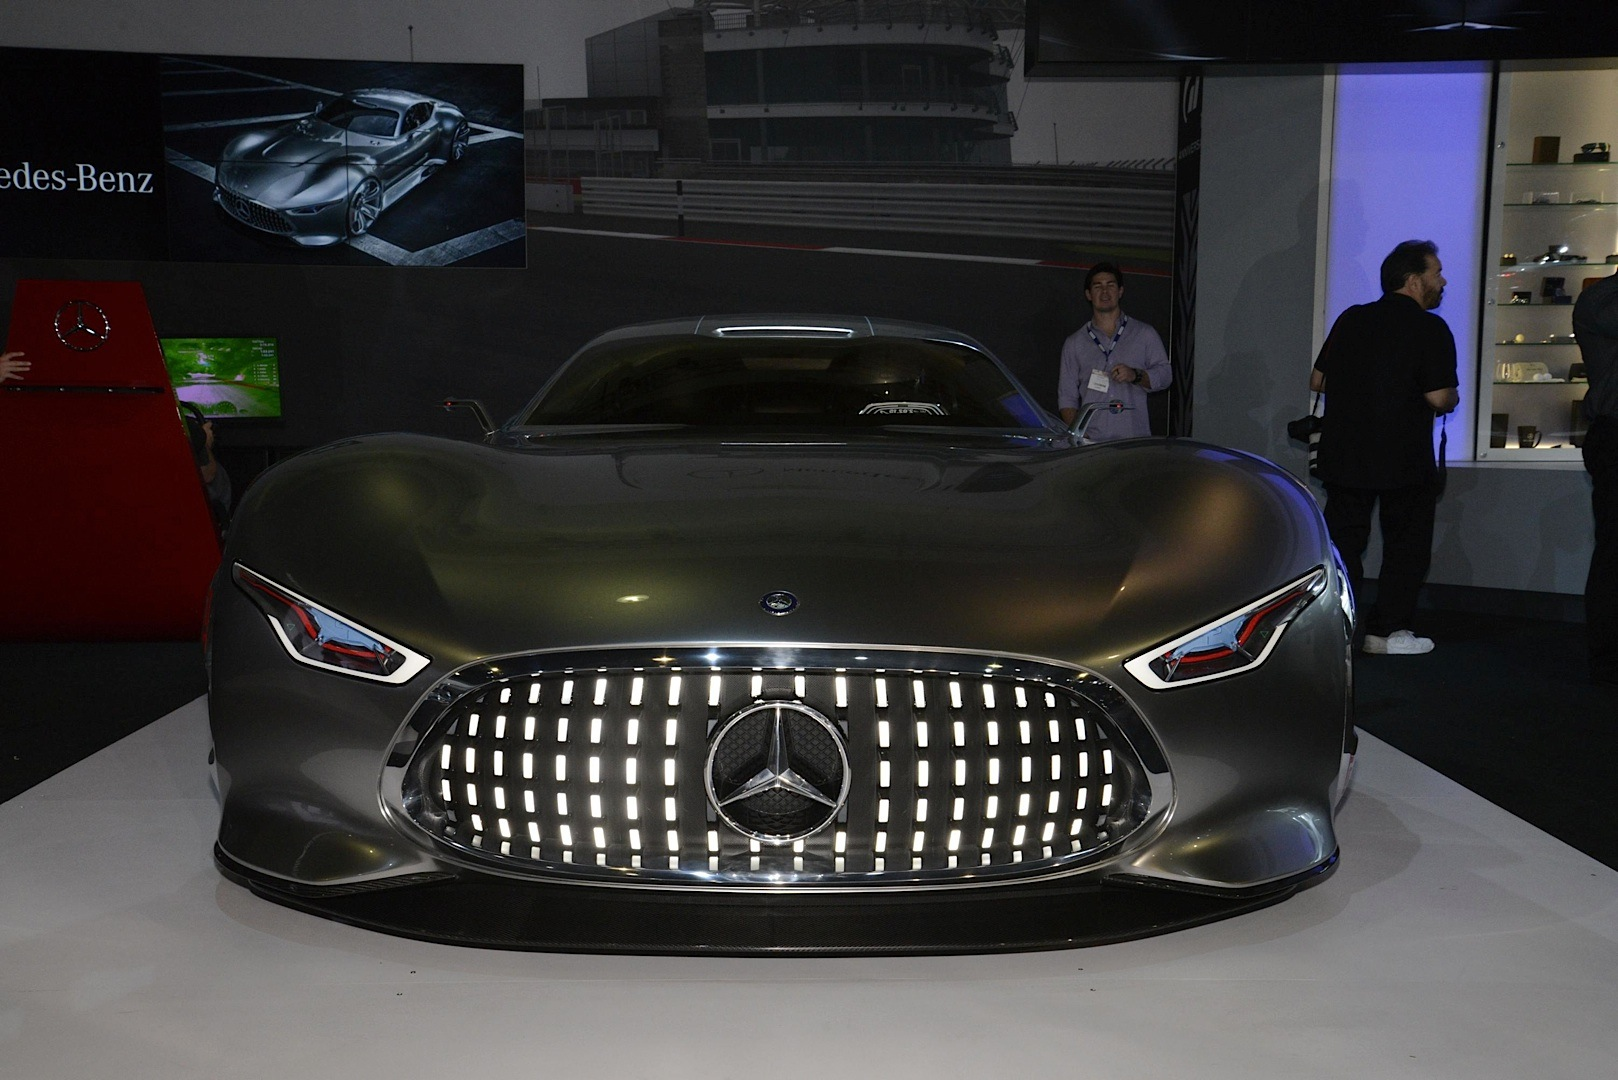 Mercedes benz amg vision gran turismo looks badass live as for Mercedes benz car racing games